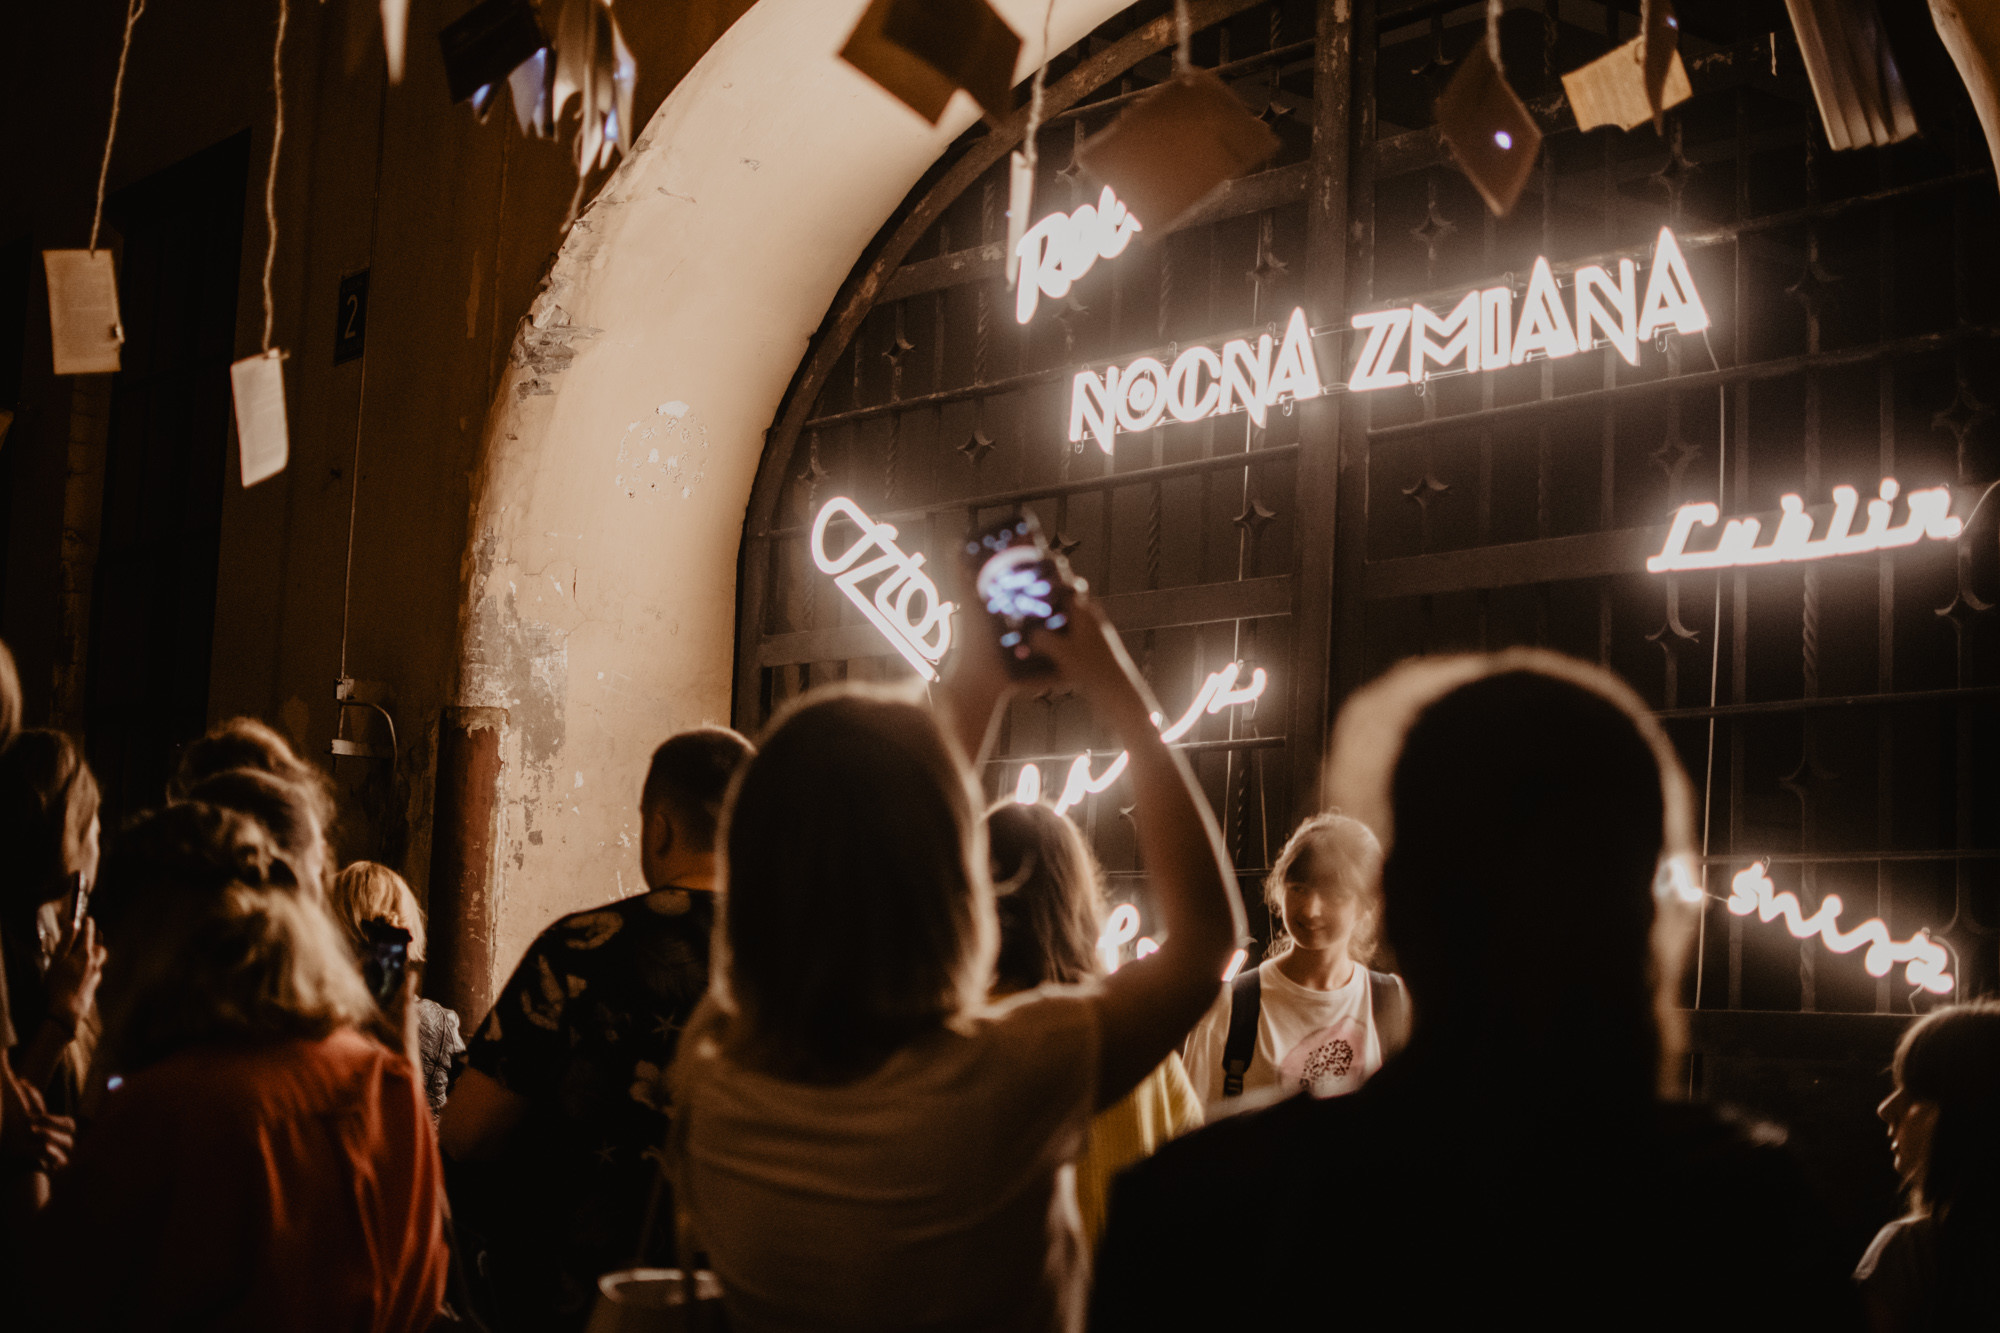 Lublin's Night of Culture